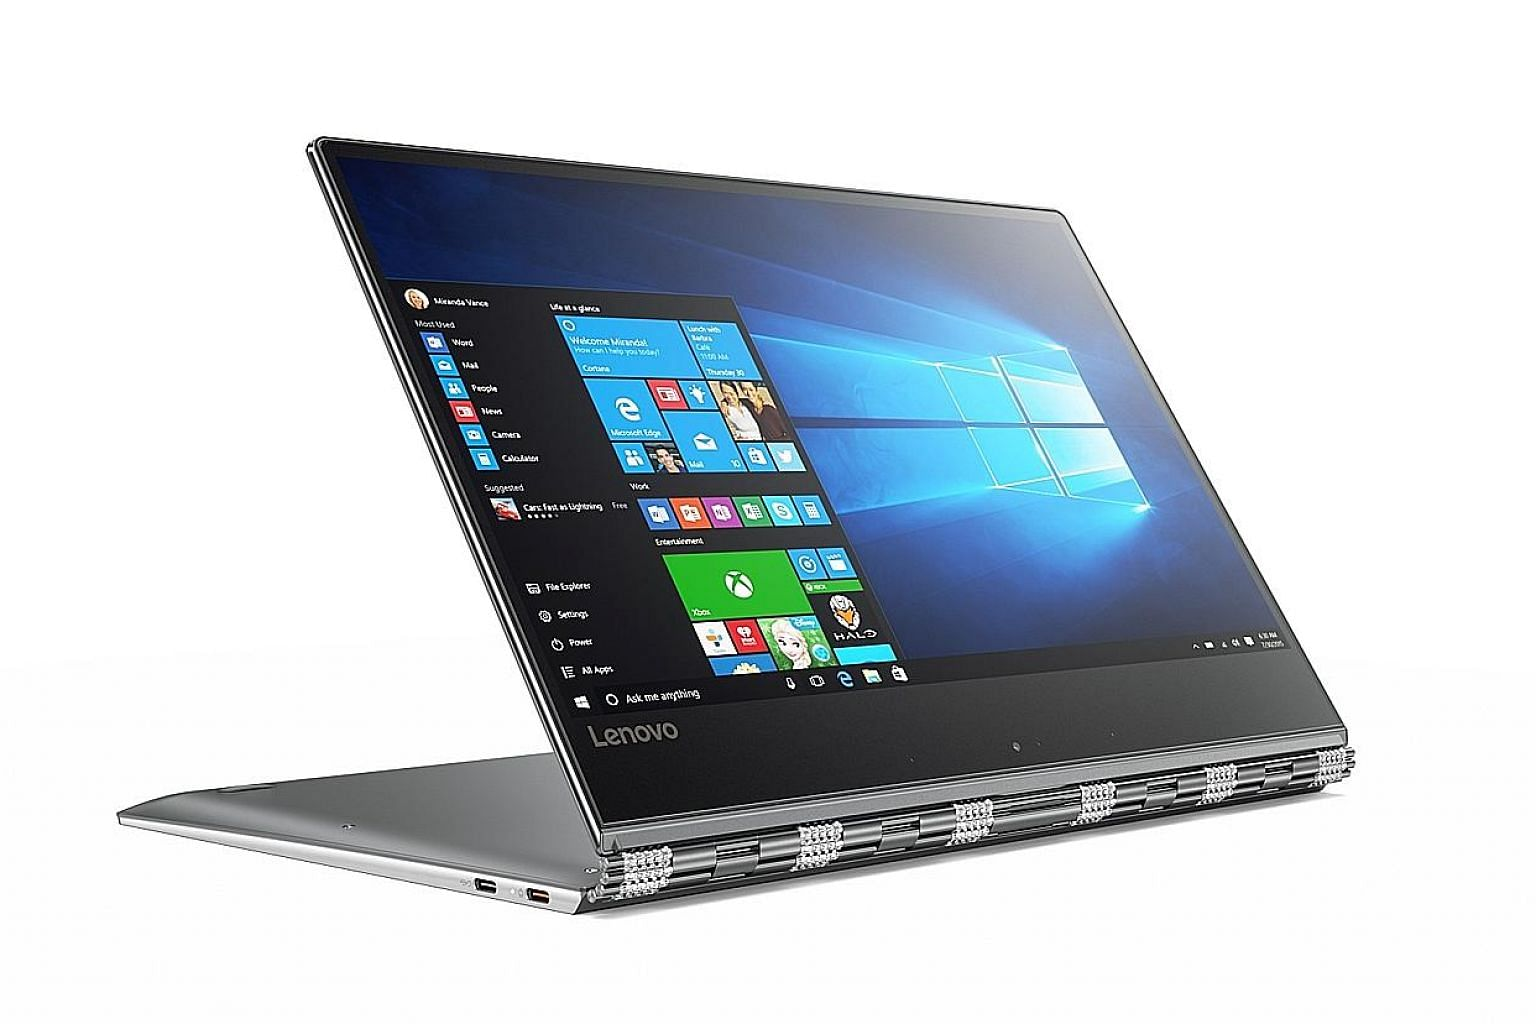 The Lenovo Yoga 910's 78 watt-hour battery is almost twice the capacity of the typical ultrabook battery.